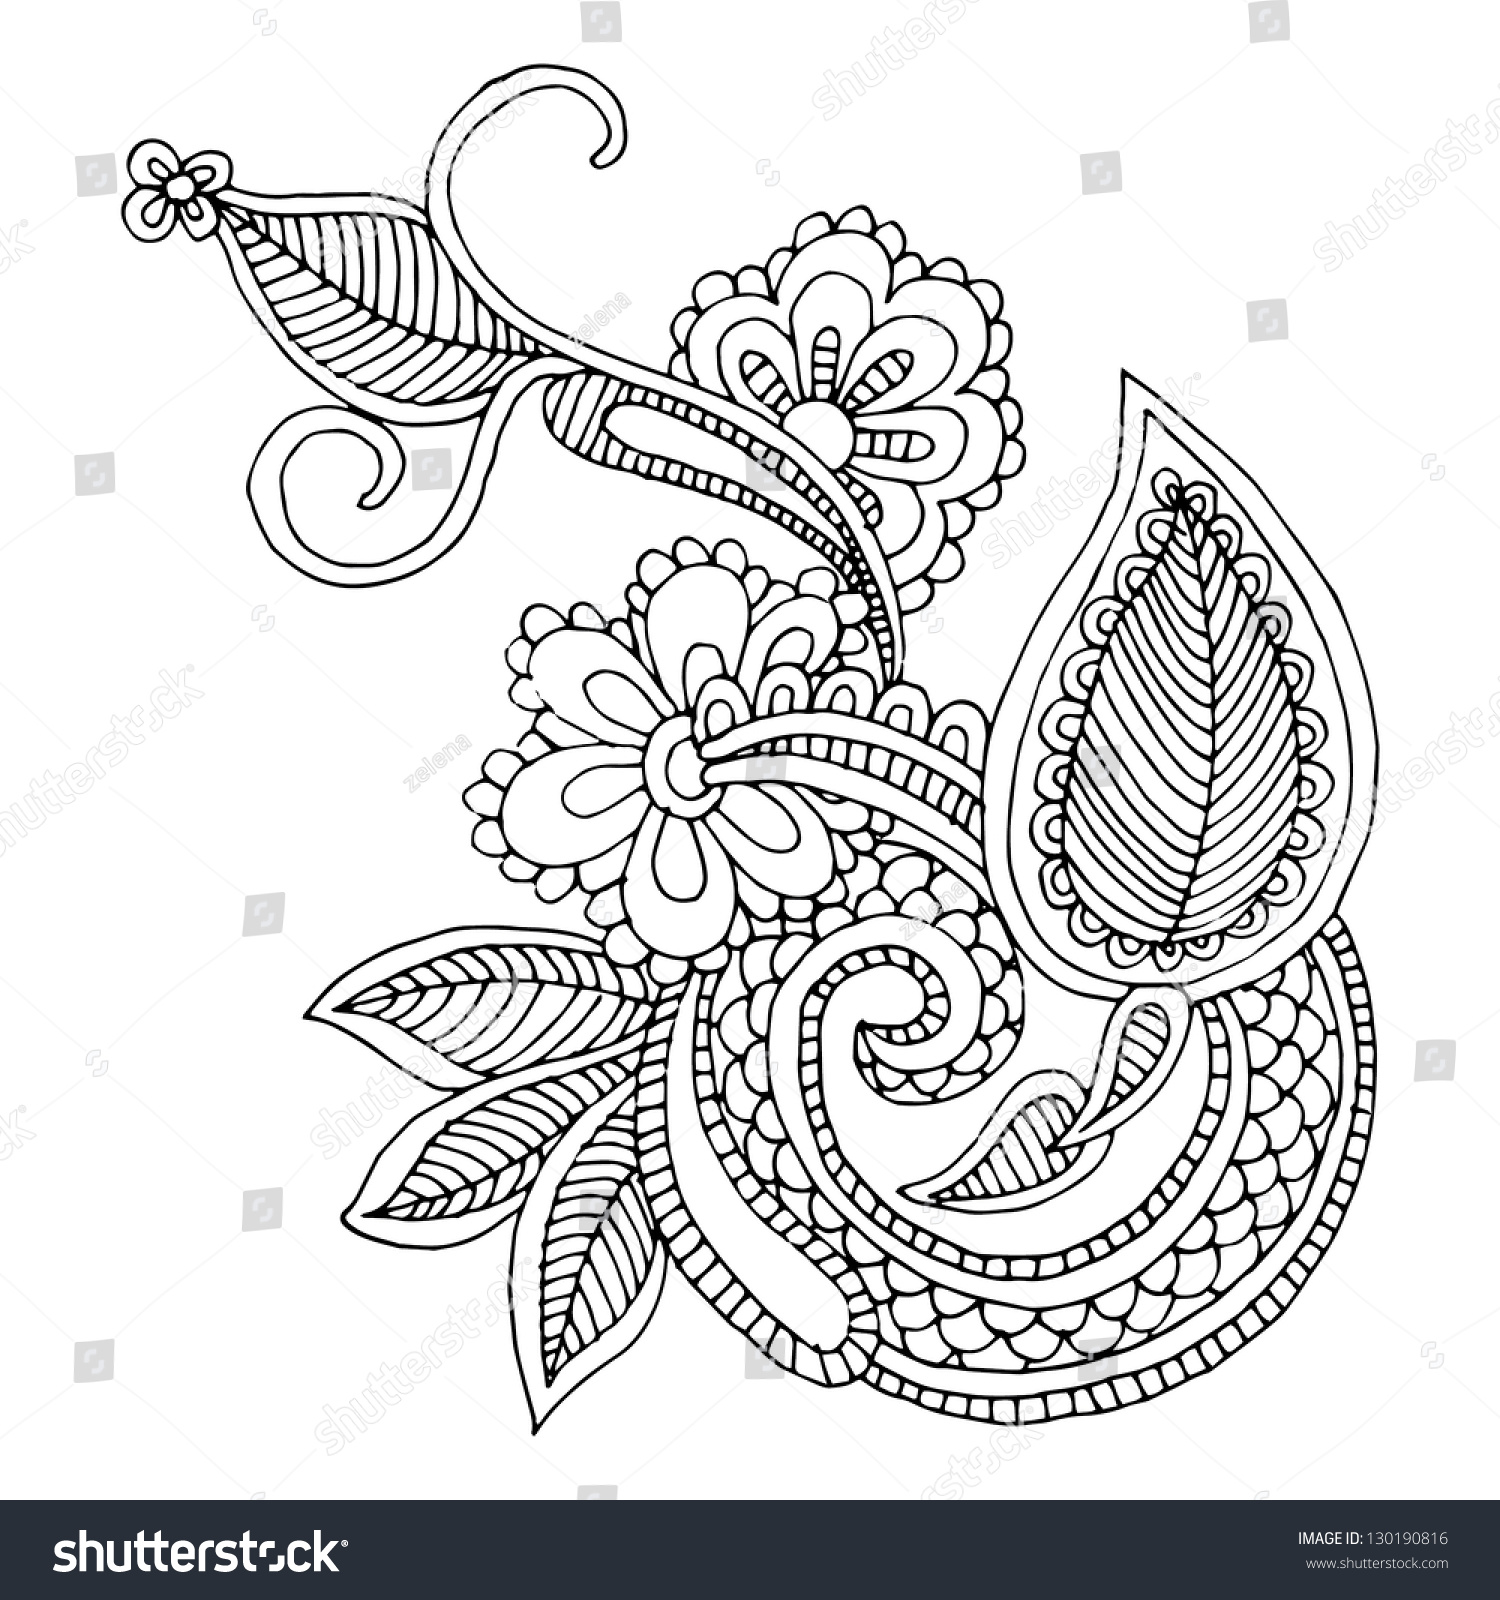 Neckline Drawing : Neckline embroidery design floral ornamented pattern stock